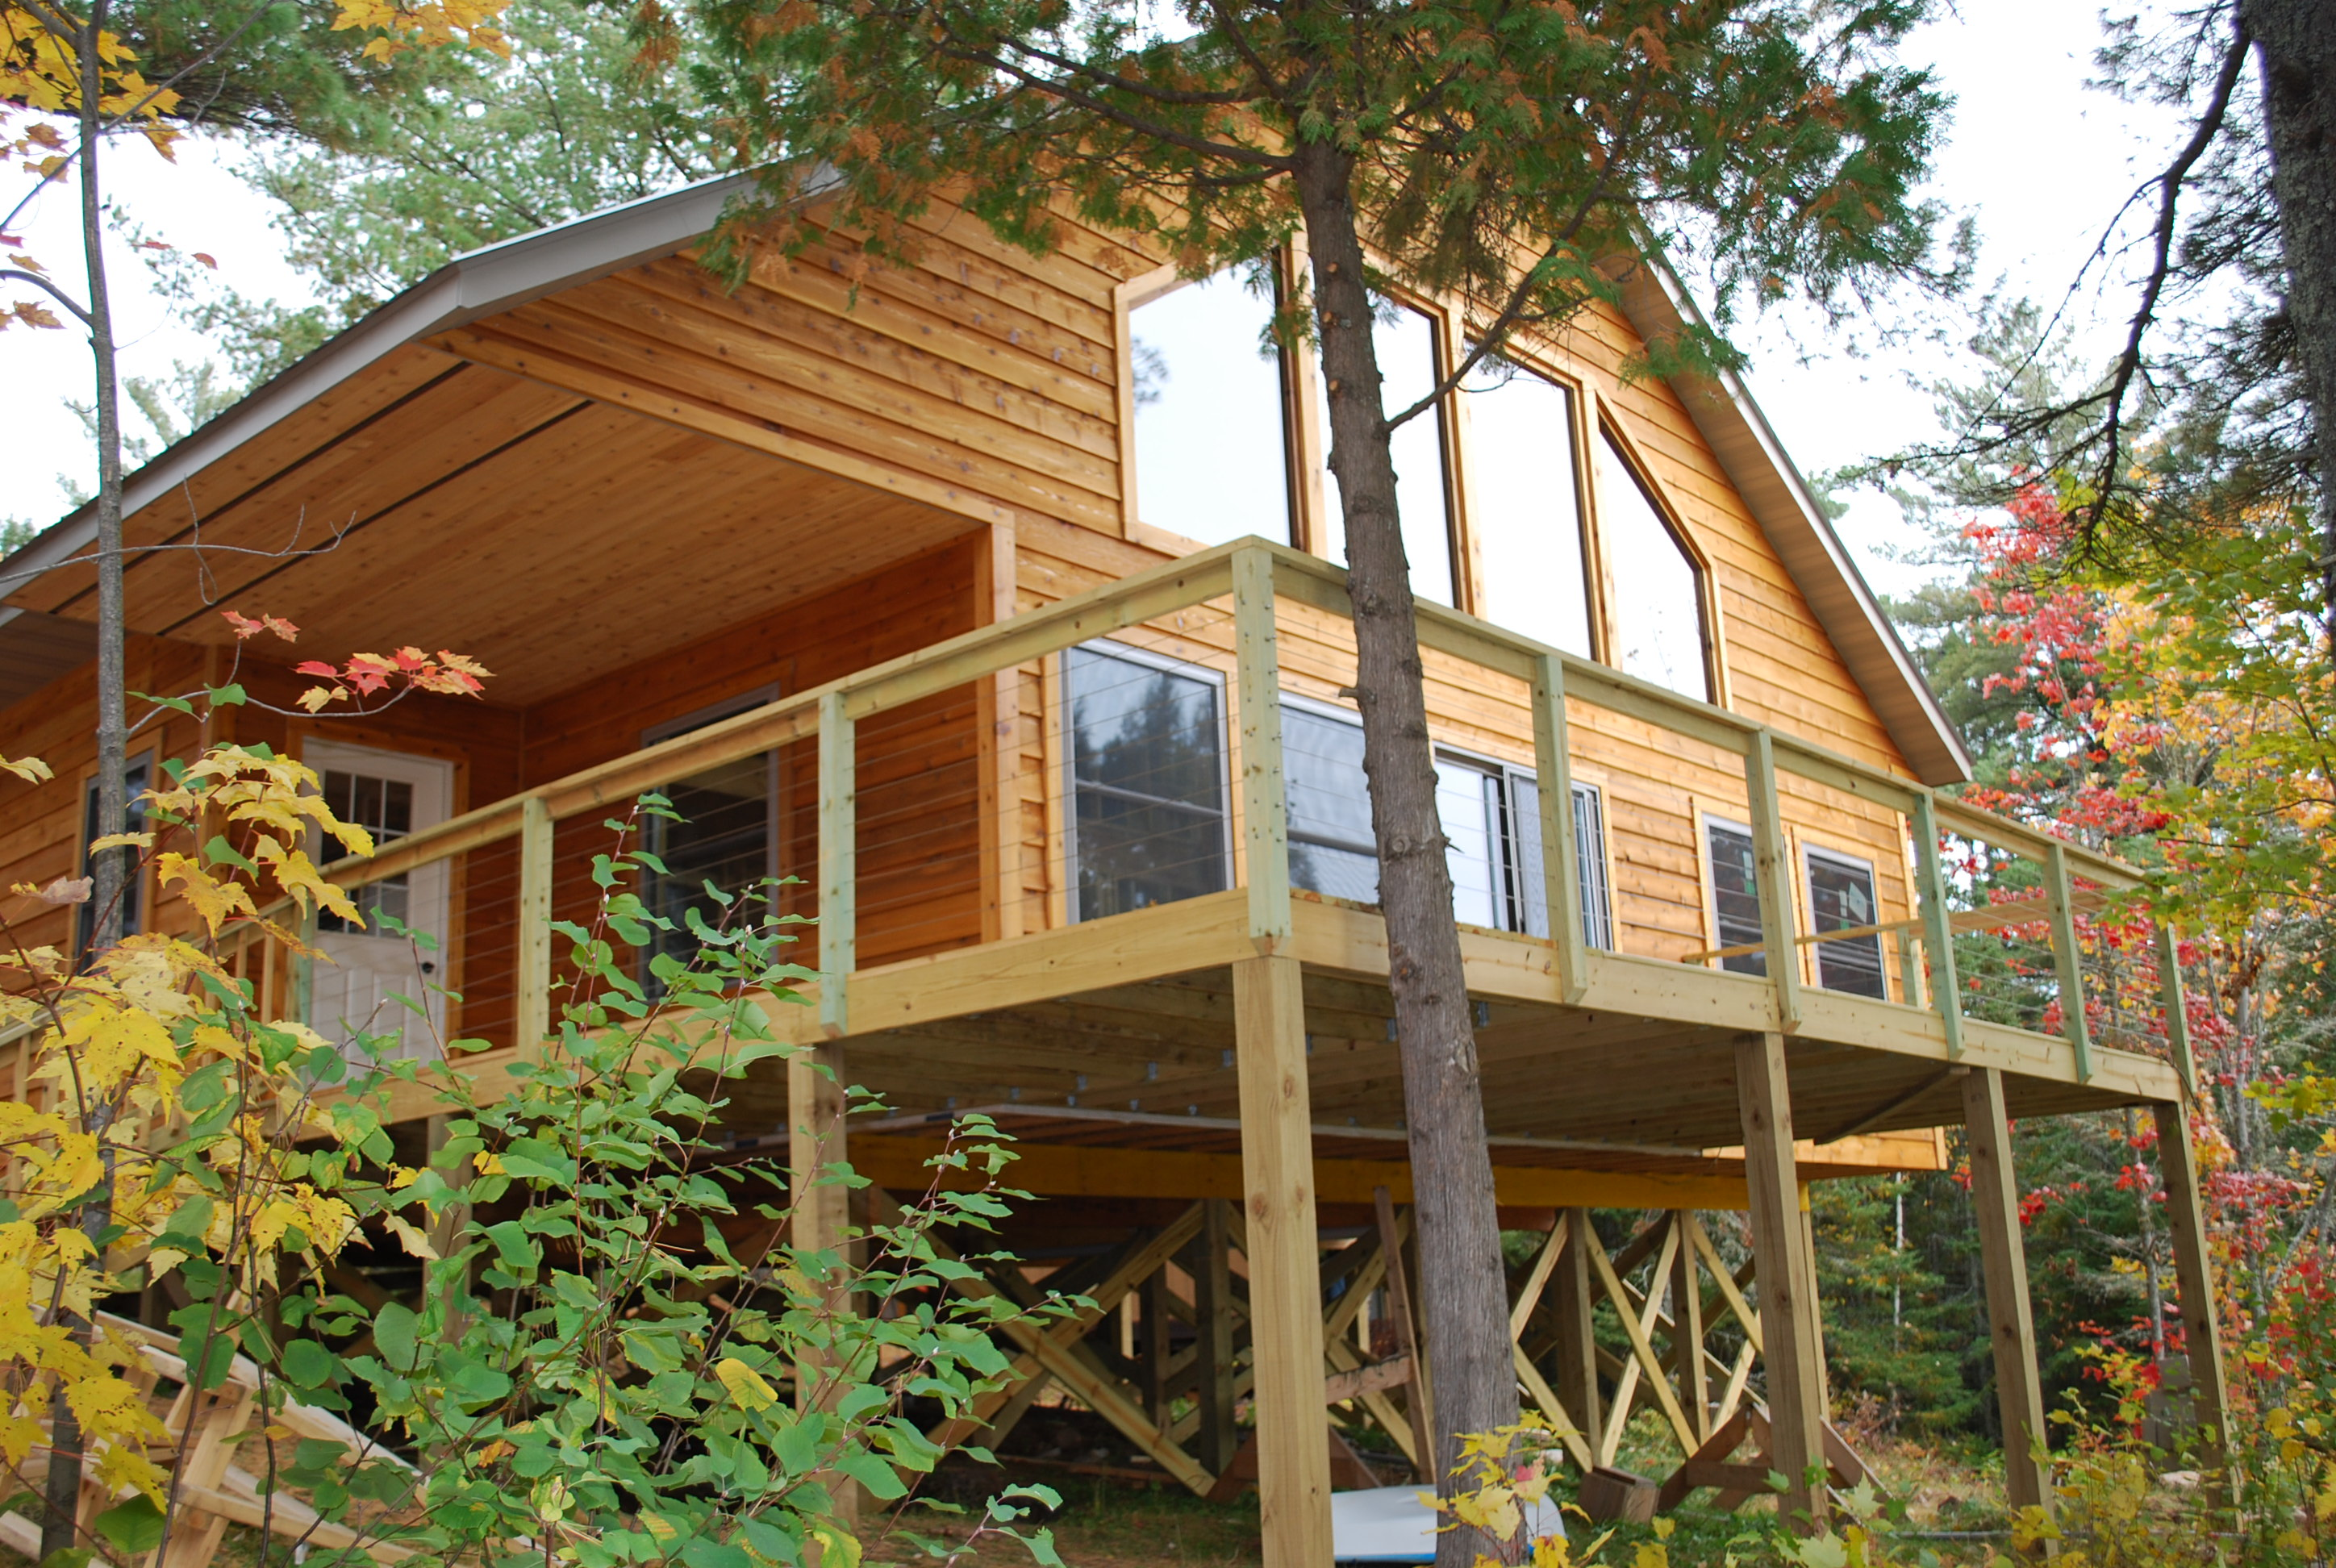 mn to winter log minnesota rent in for rental interior cabin ely private info cabins onlinechange